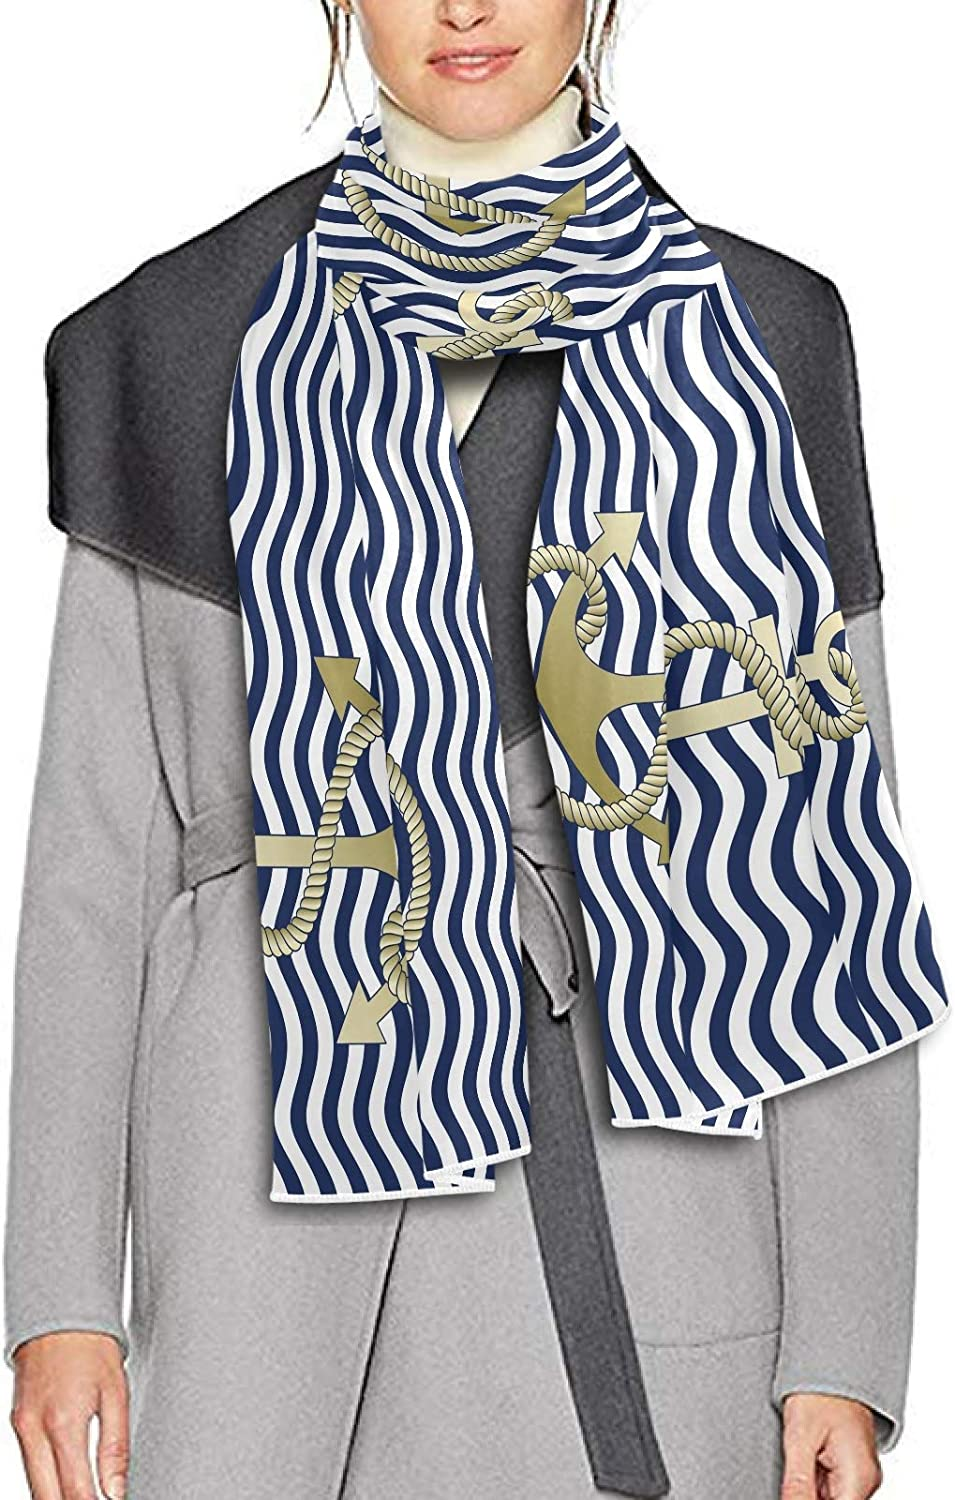 Scarf for Women and Men Blue Stripe Anchor Navigation Blanket Shawl Scarf wraps Soft Thick Winter Large Scarves Lightweight